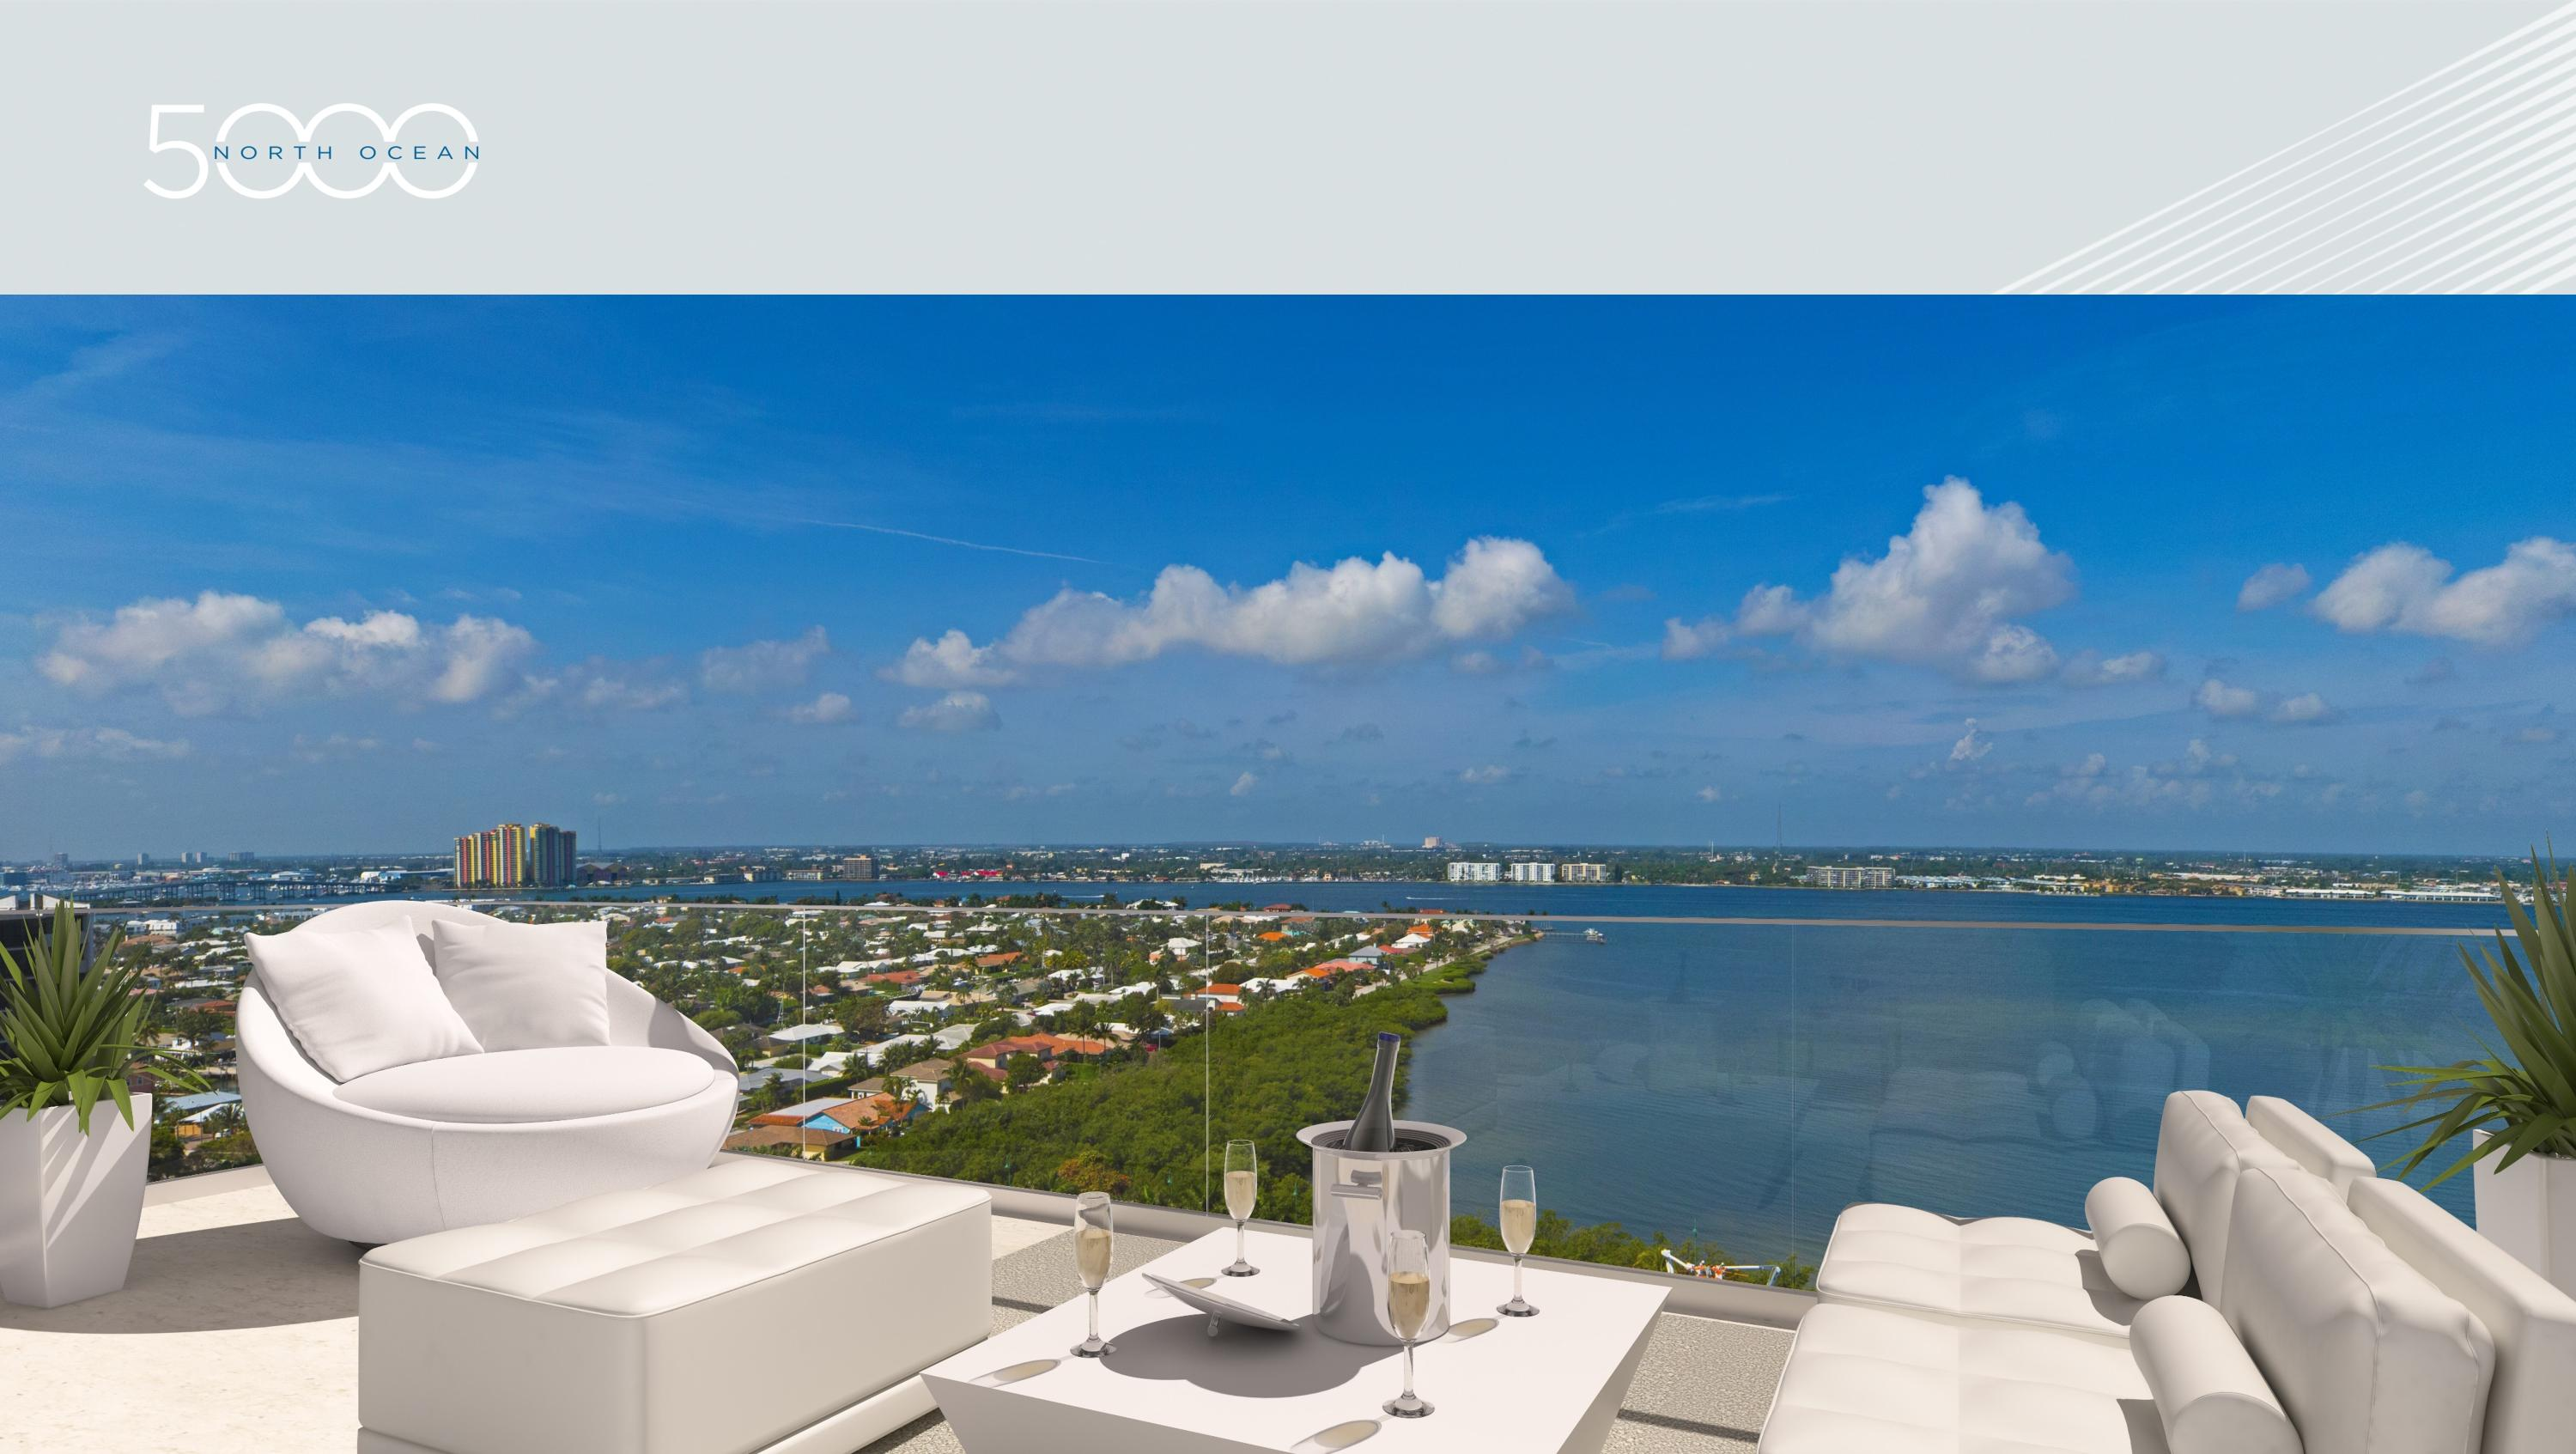 New Home for sale at 5000 Ocean Drive in Singer Island